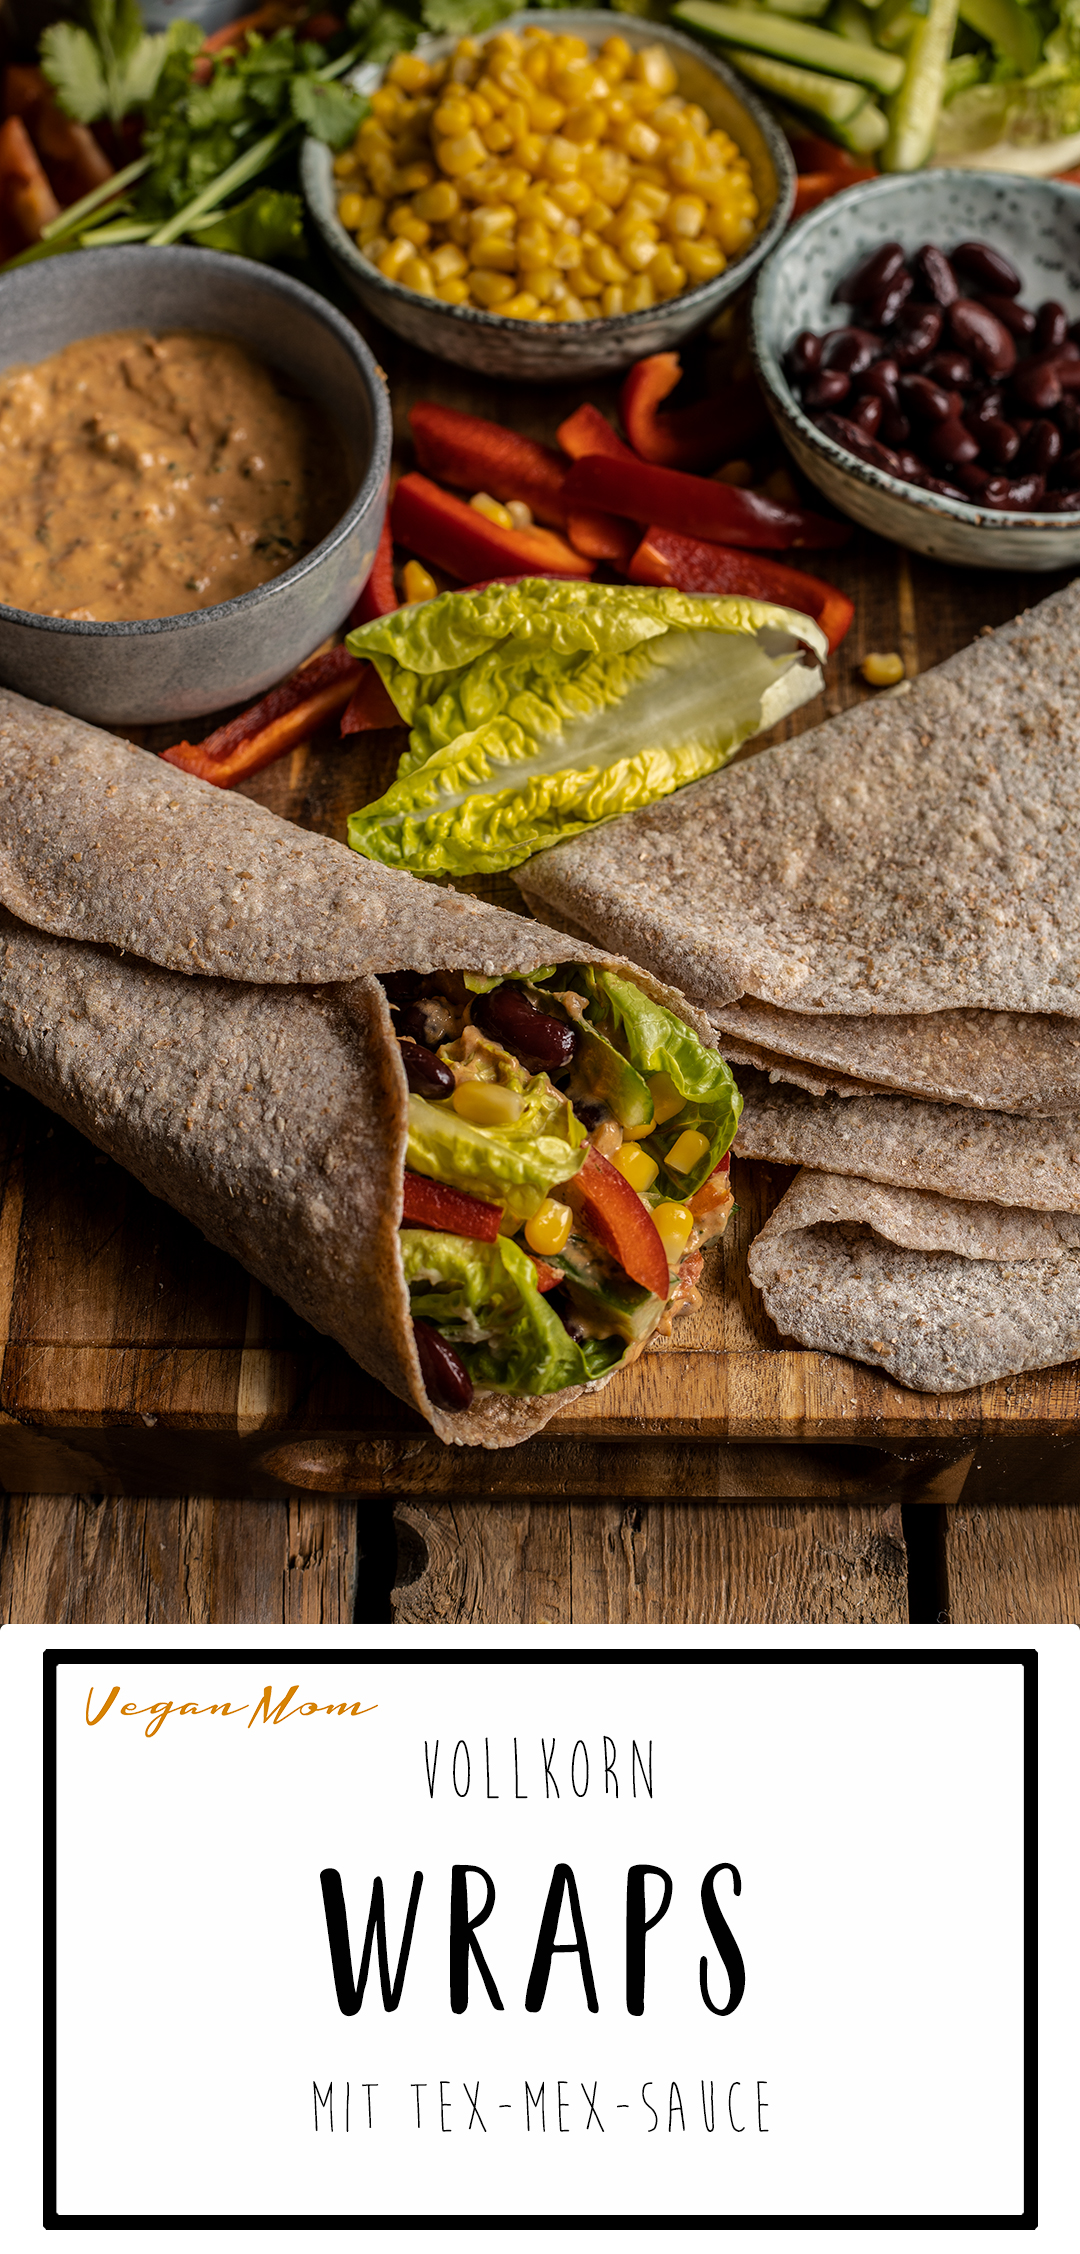 vollkorn wraps vegan